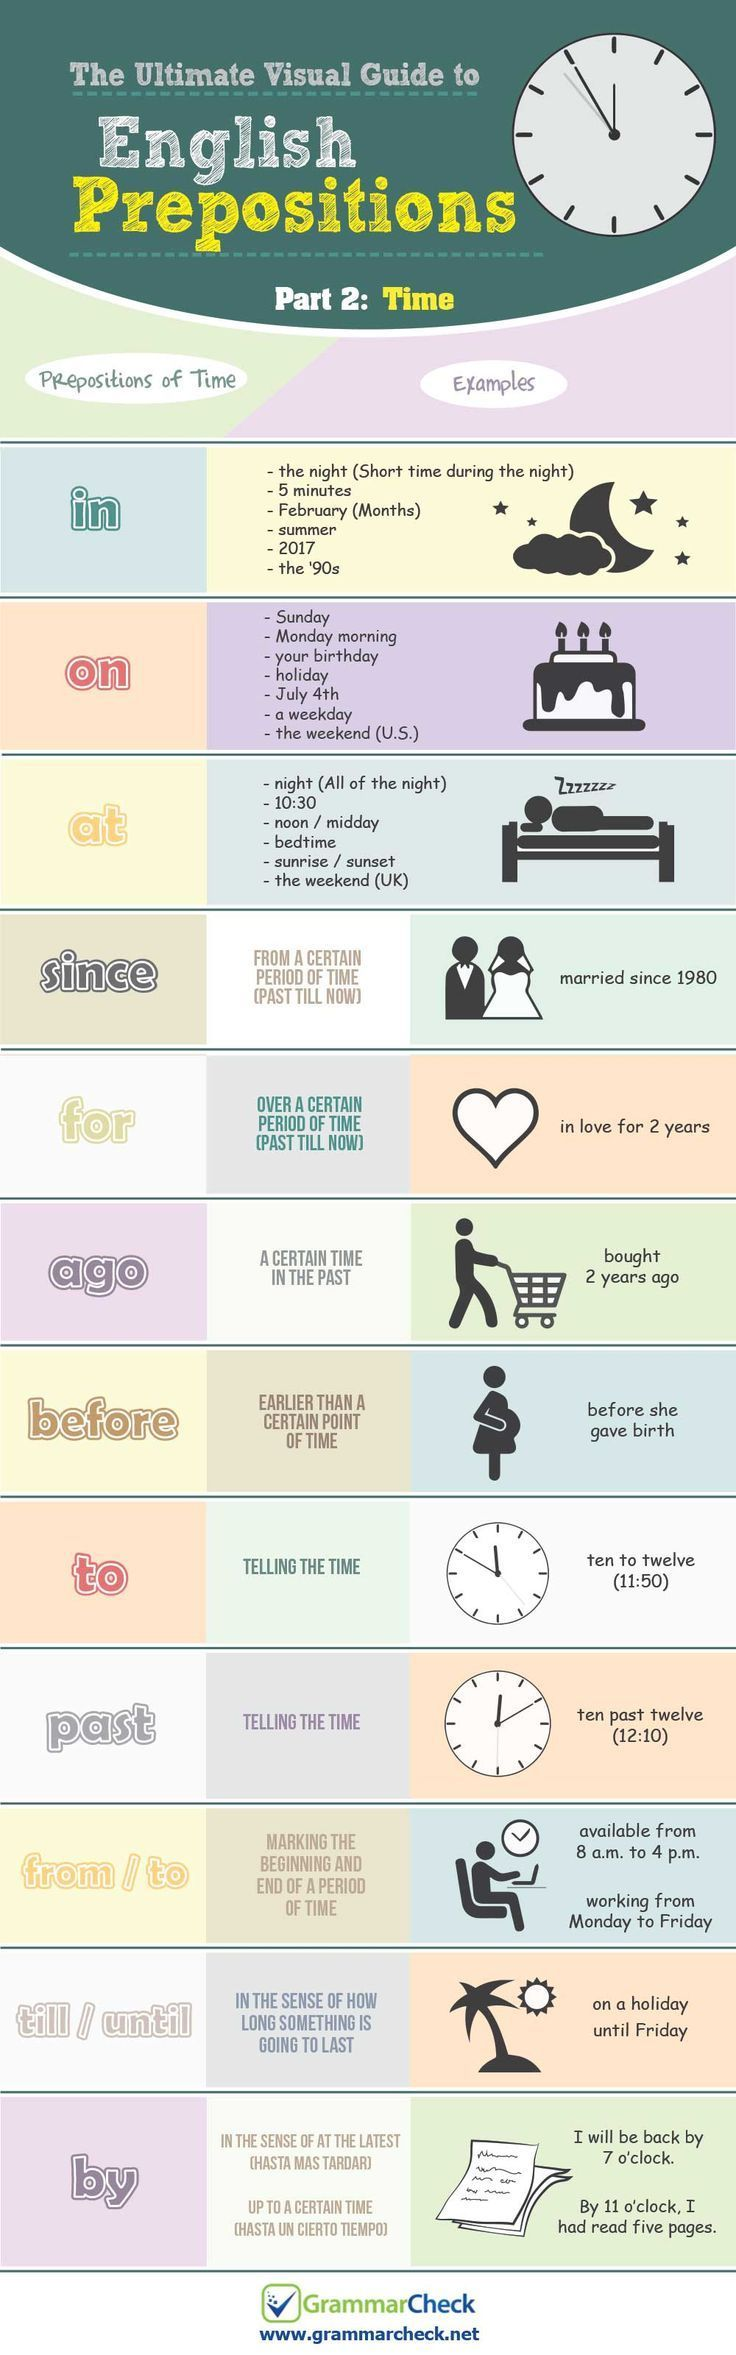 The Ultimate Visual English Prepositions Guide